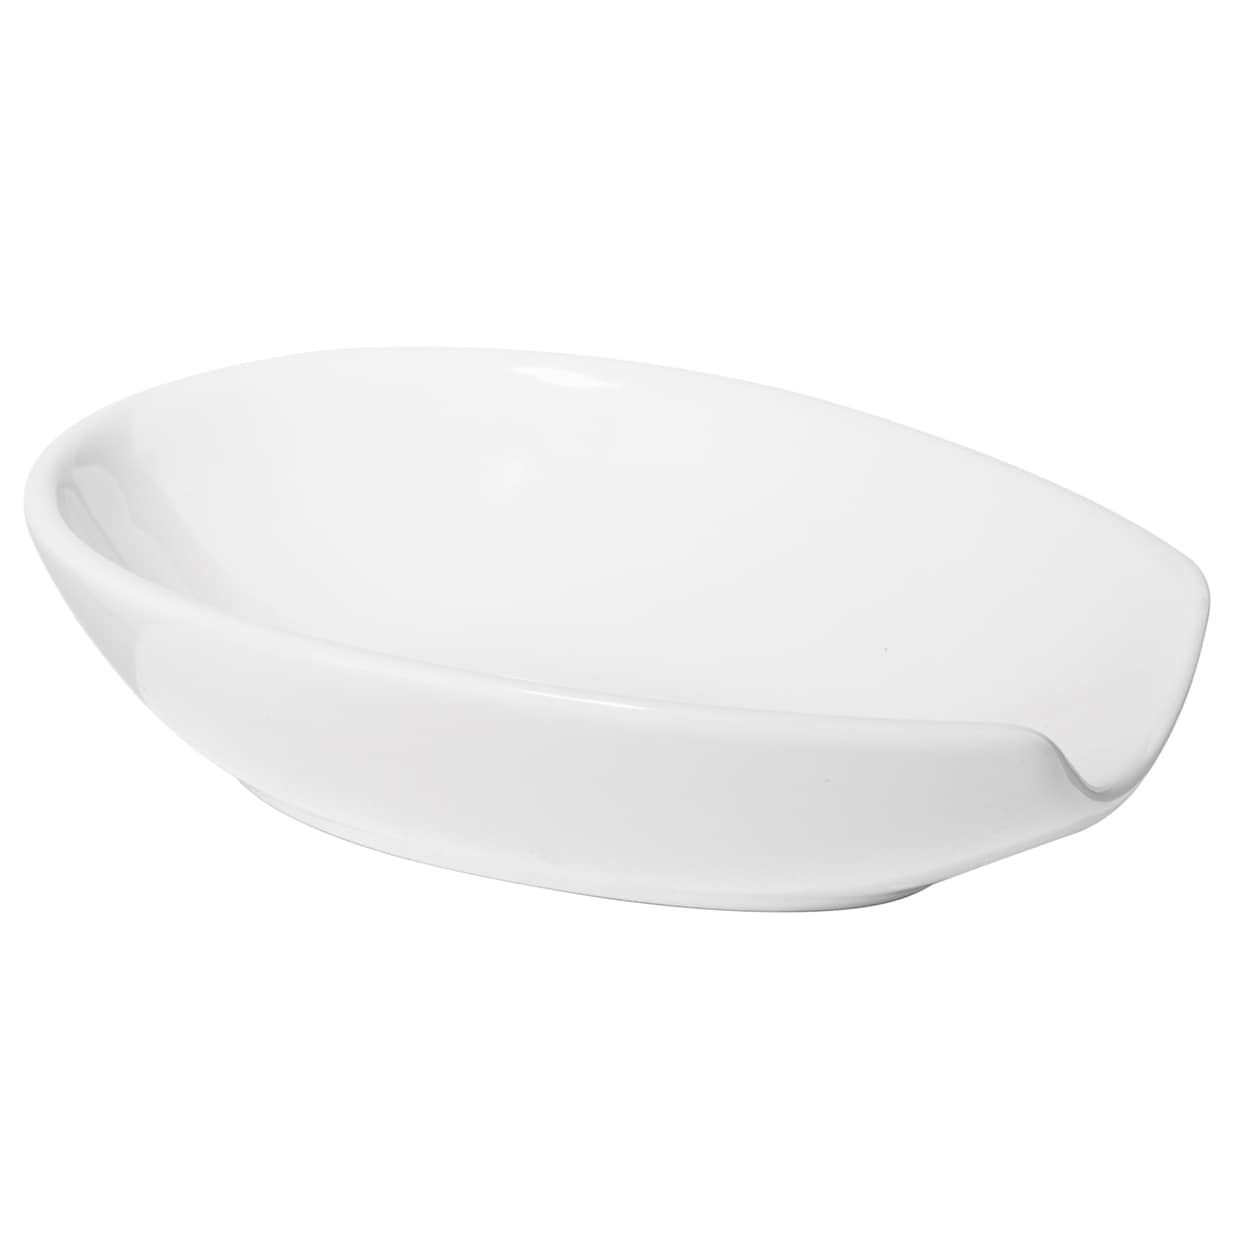 Oggi Corporation White Spooner Spoon Rest (Spooner Spoon ...